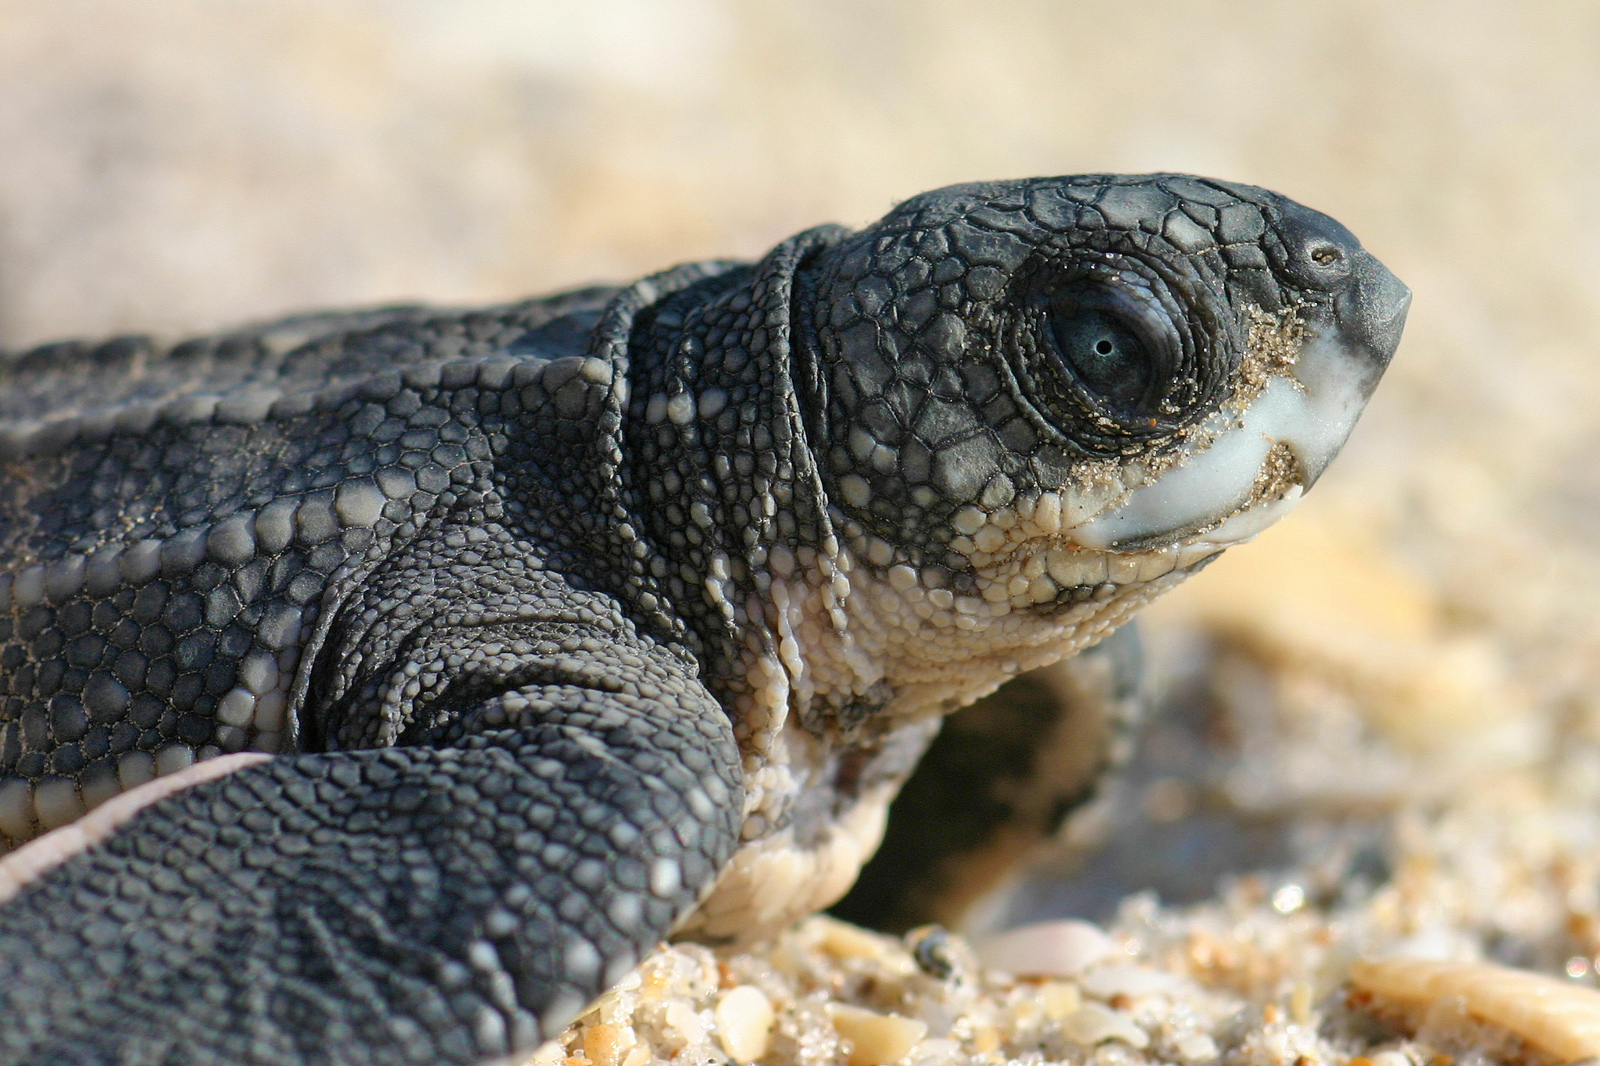 Amazing Volunteers Save Nesting Sea Turtle and 71 Eggs From Poachers in Costa Rica